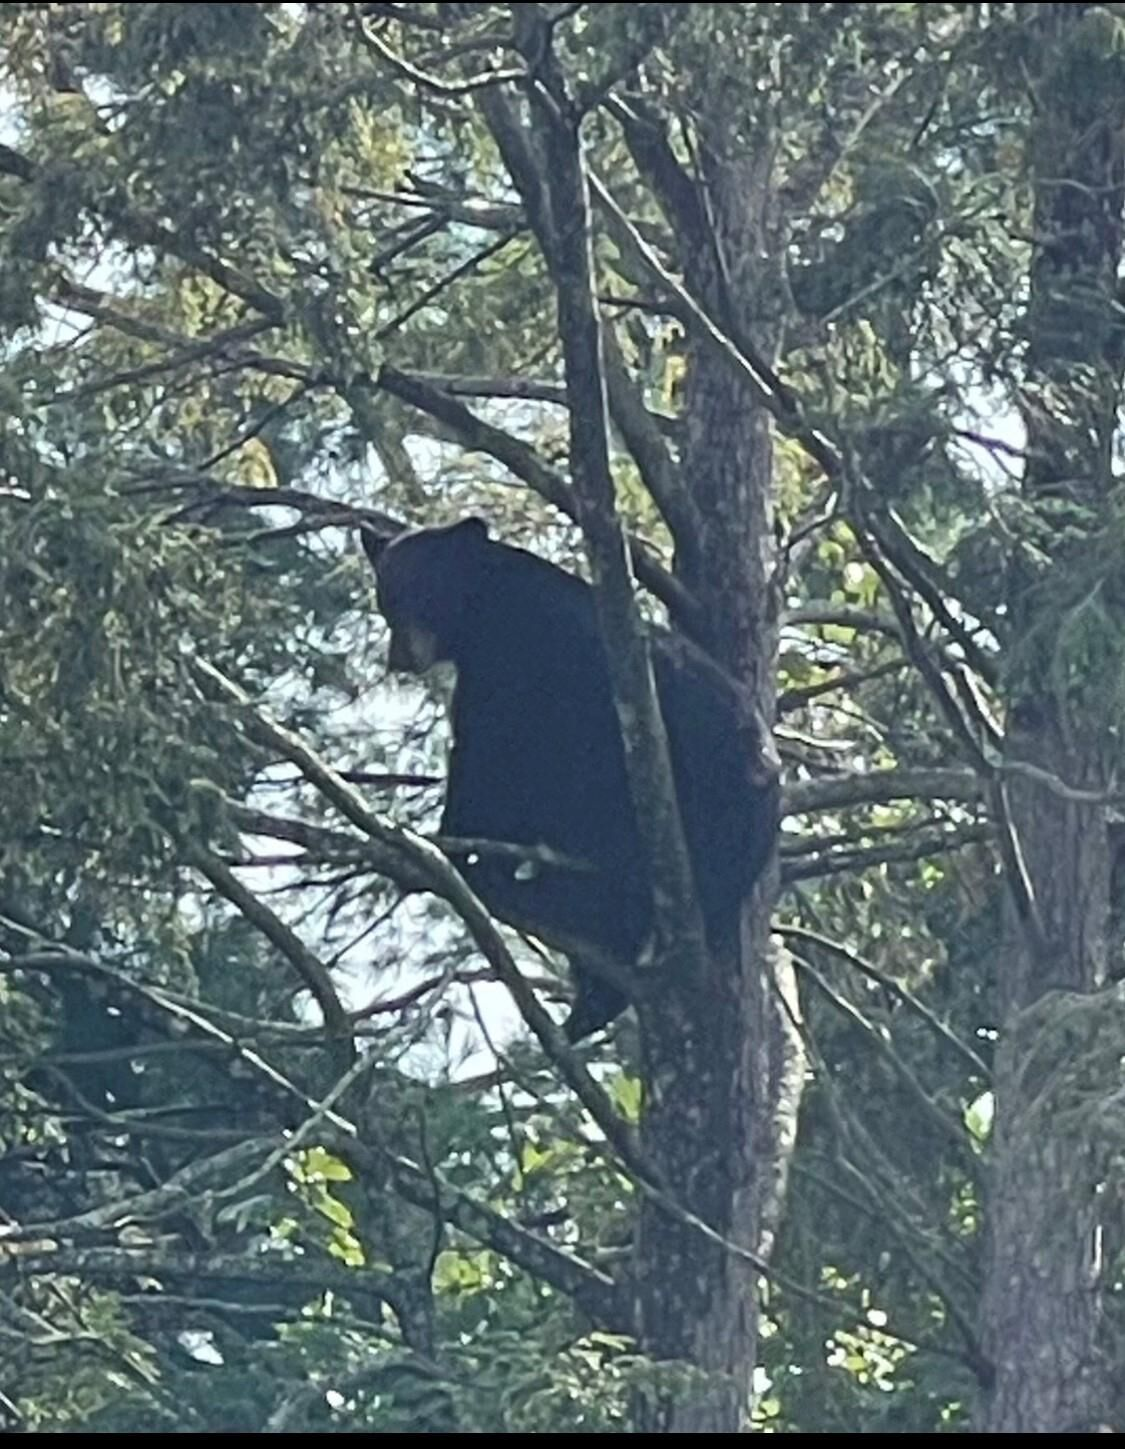 Bear in West Hartford tree climbs down without incident